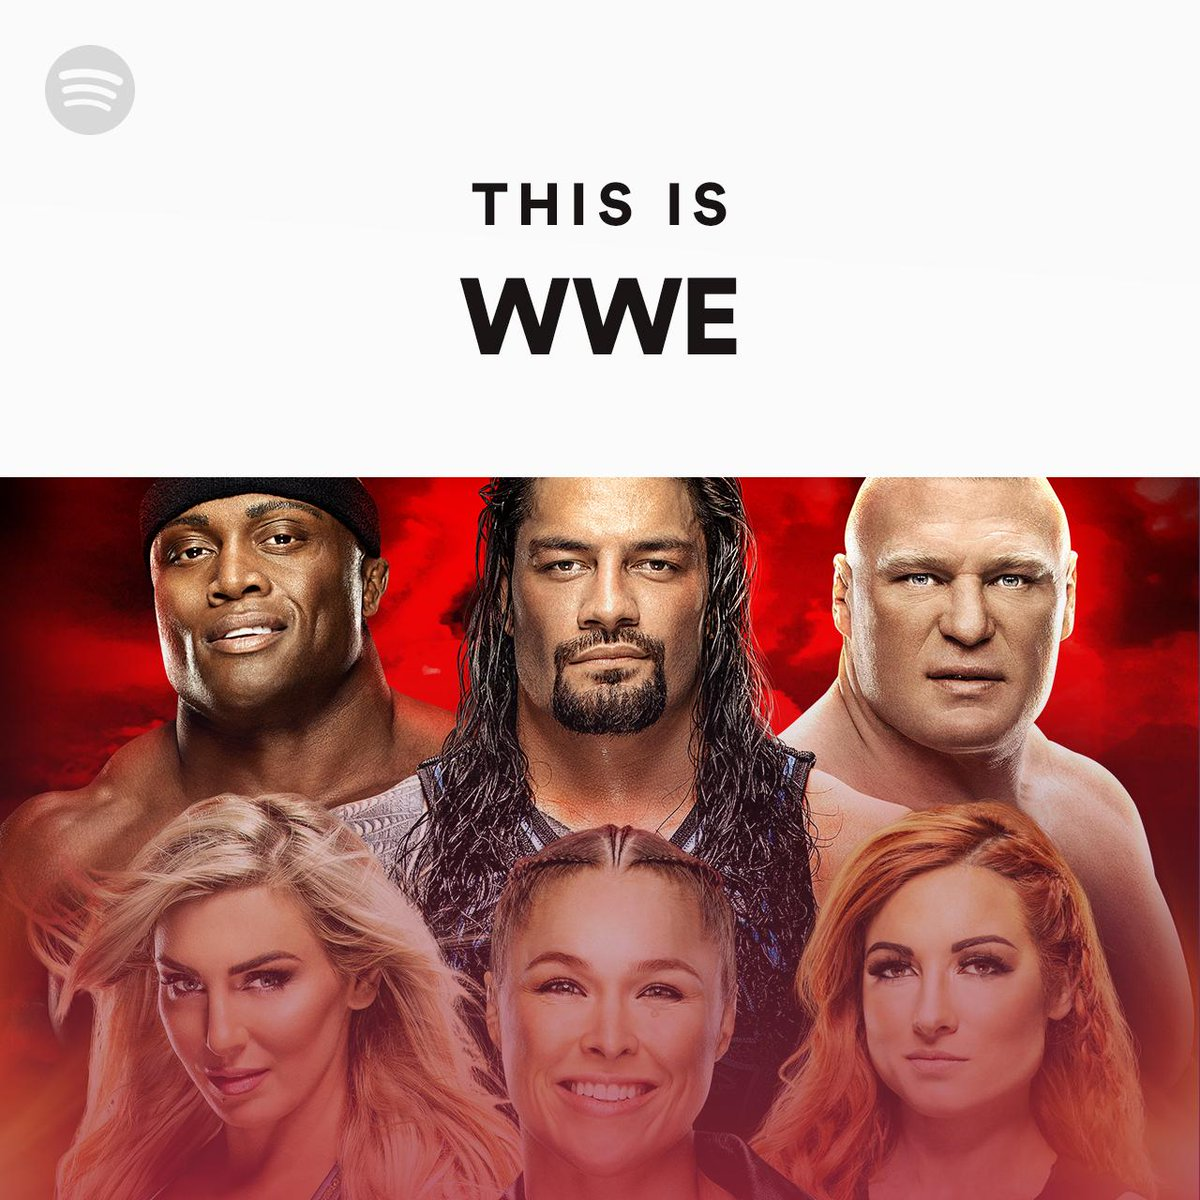 Before we go live from New York, @WWEMusic goes live on @Spotify. @WWERollins, @BeckyLynchWWE, and more are the face of #WrestleMania this week.